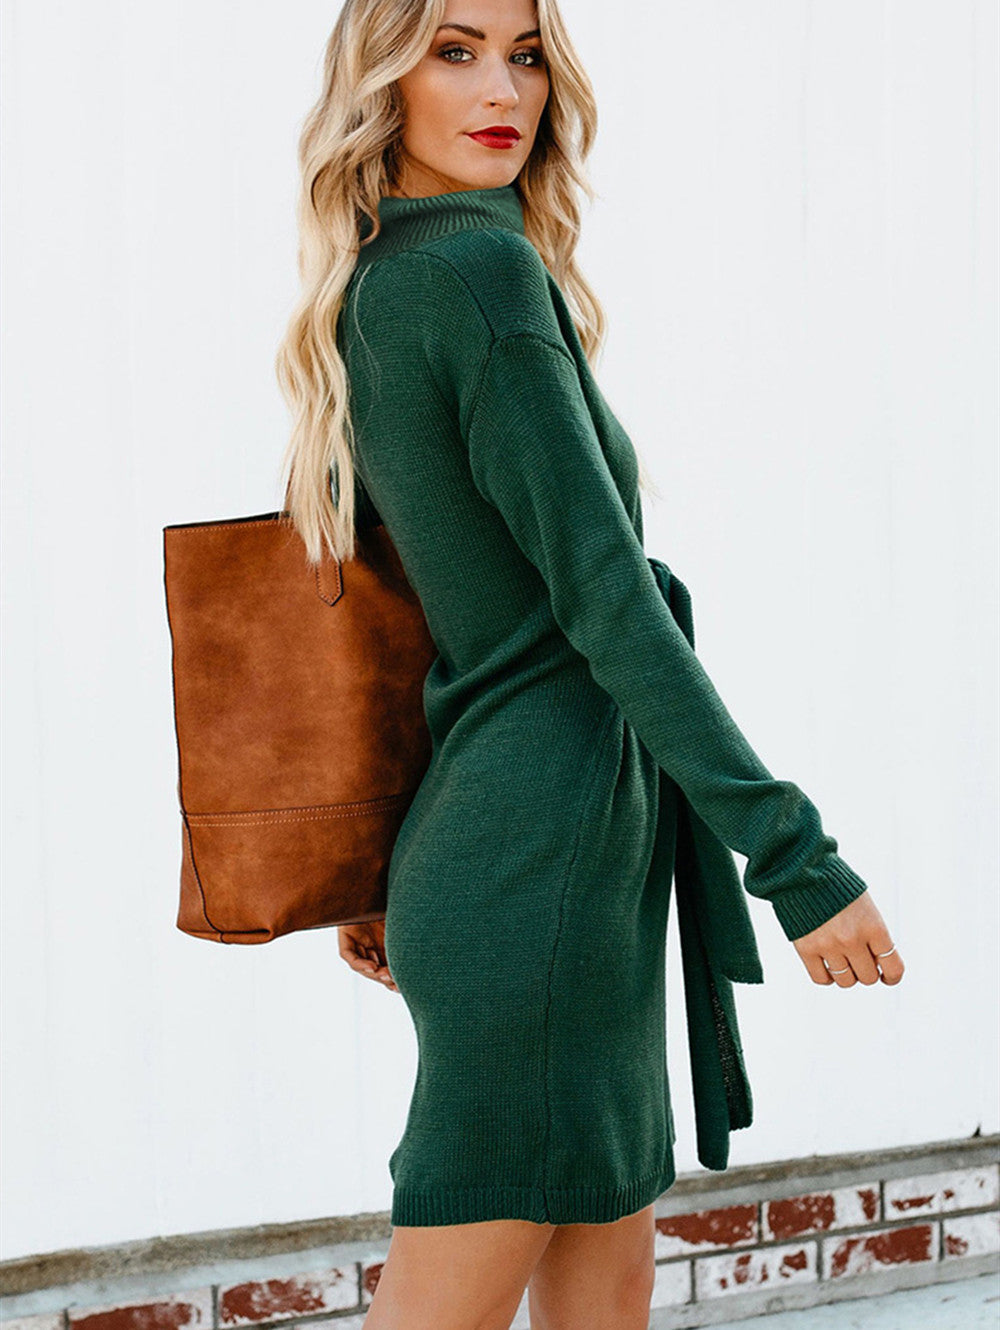 Turtleneck Pullover Long Sleeve Sweater Dress with Tie Waist